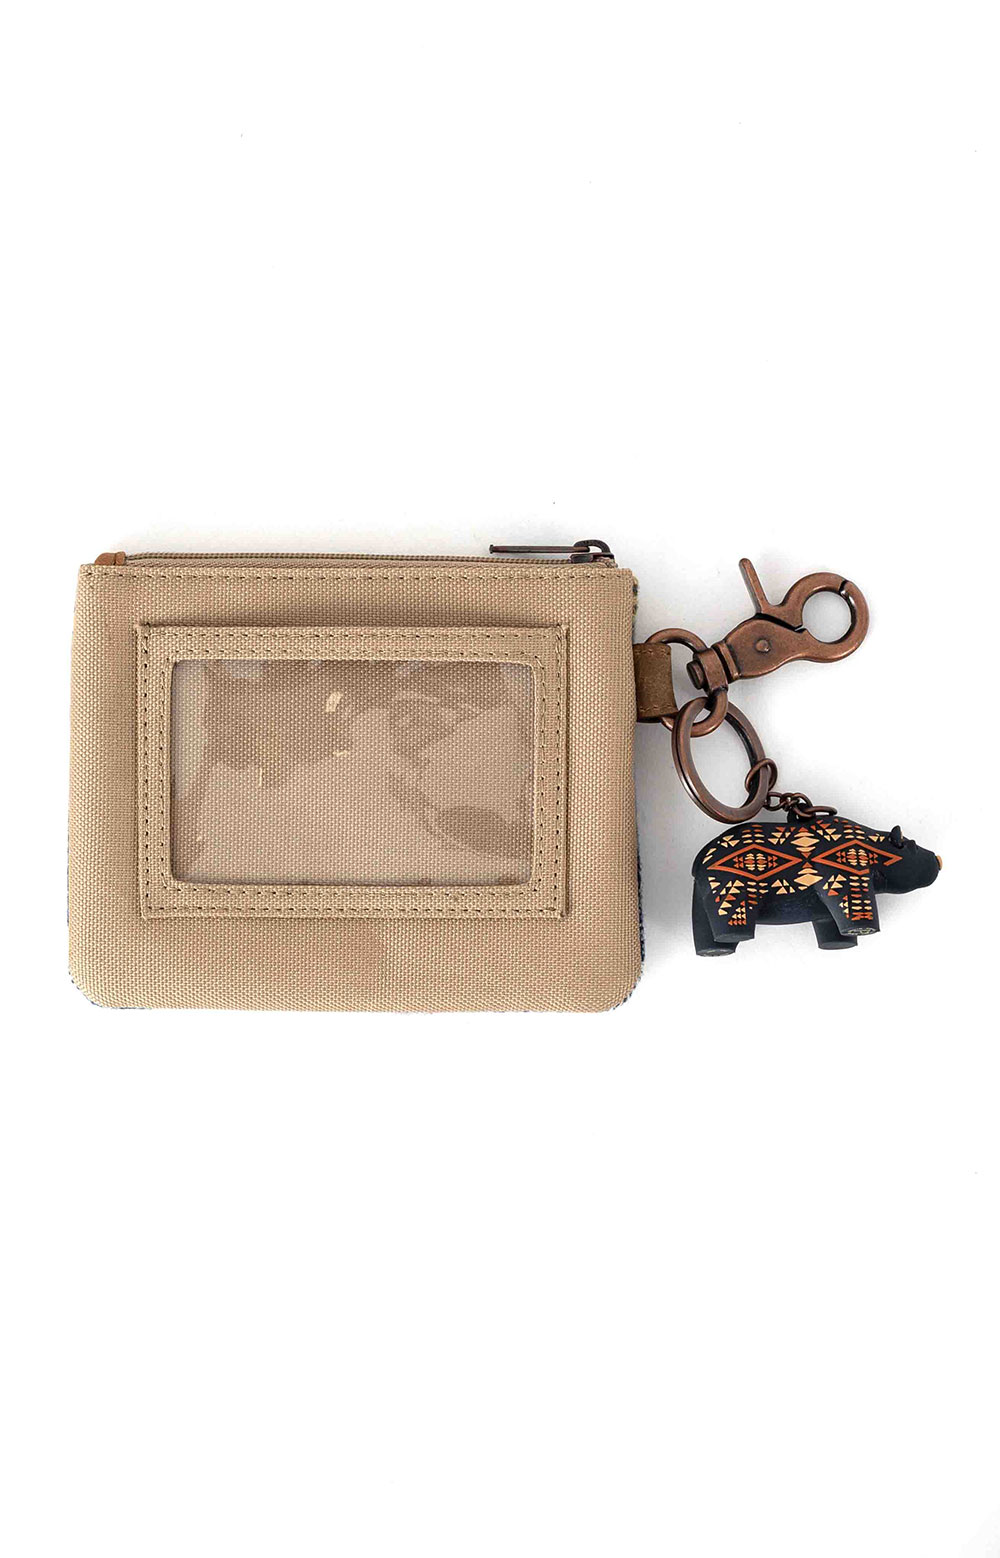 ID Pouch with Bear Keychain - Crescent Bay 2